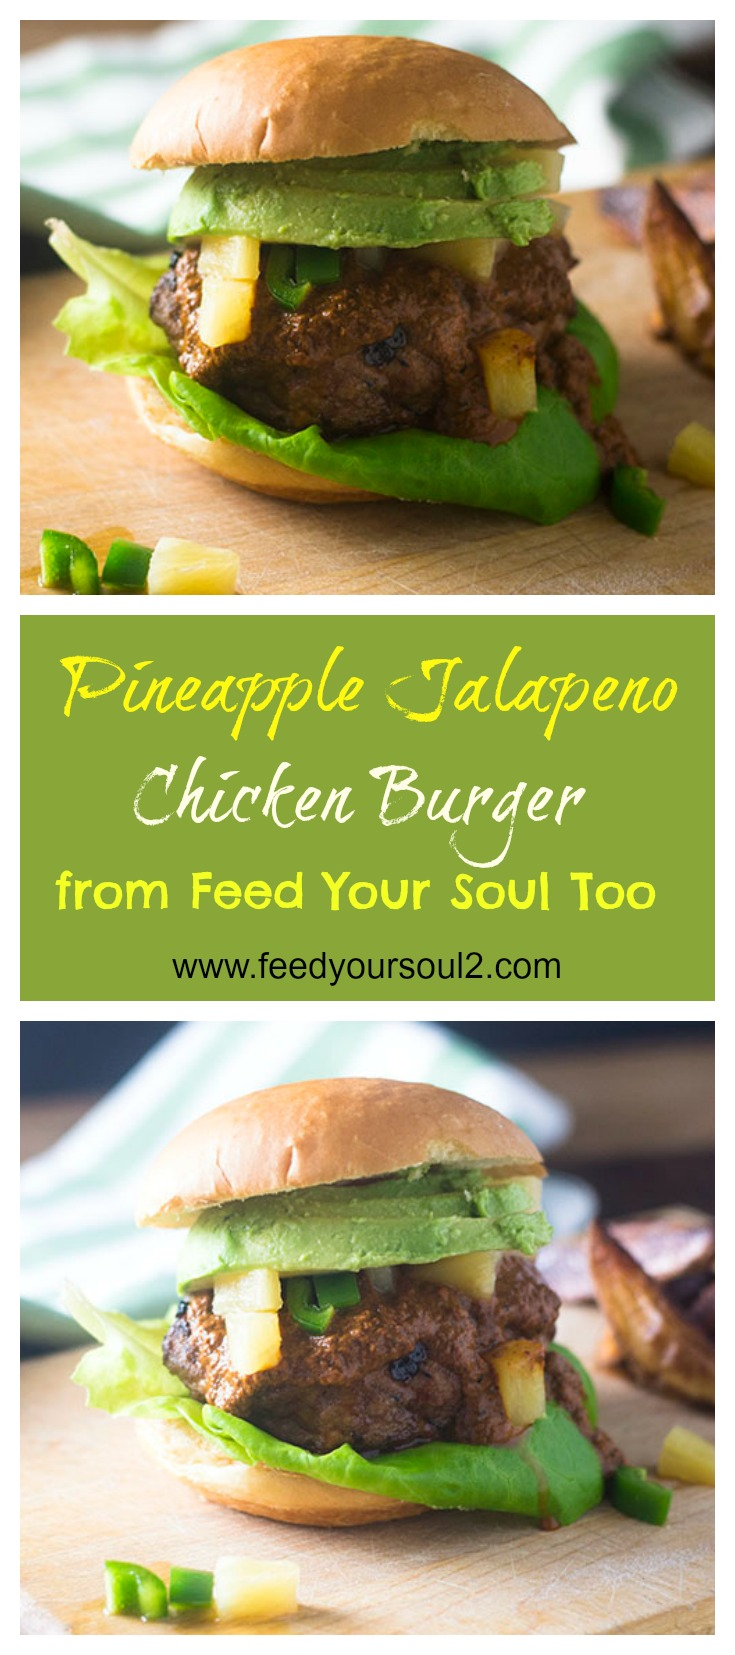 Pineapple Jalapeno Chicken Burger #dinner #spicy #chicken #burgers | feedyoursoul2.com